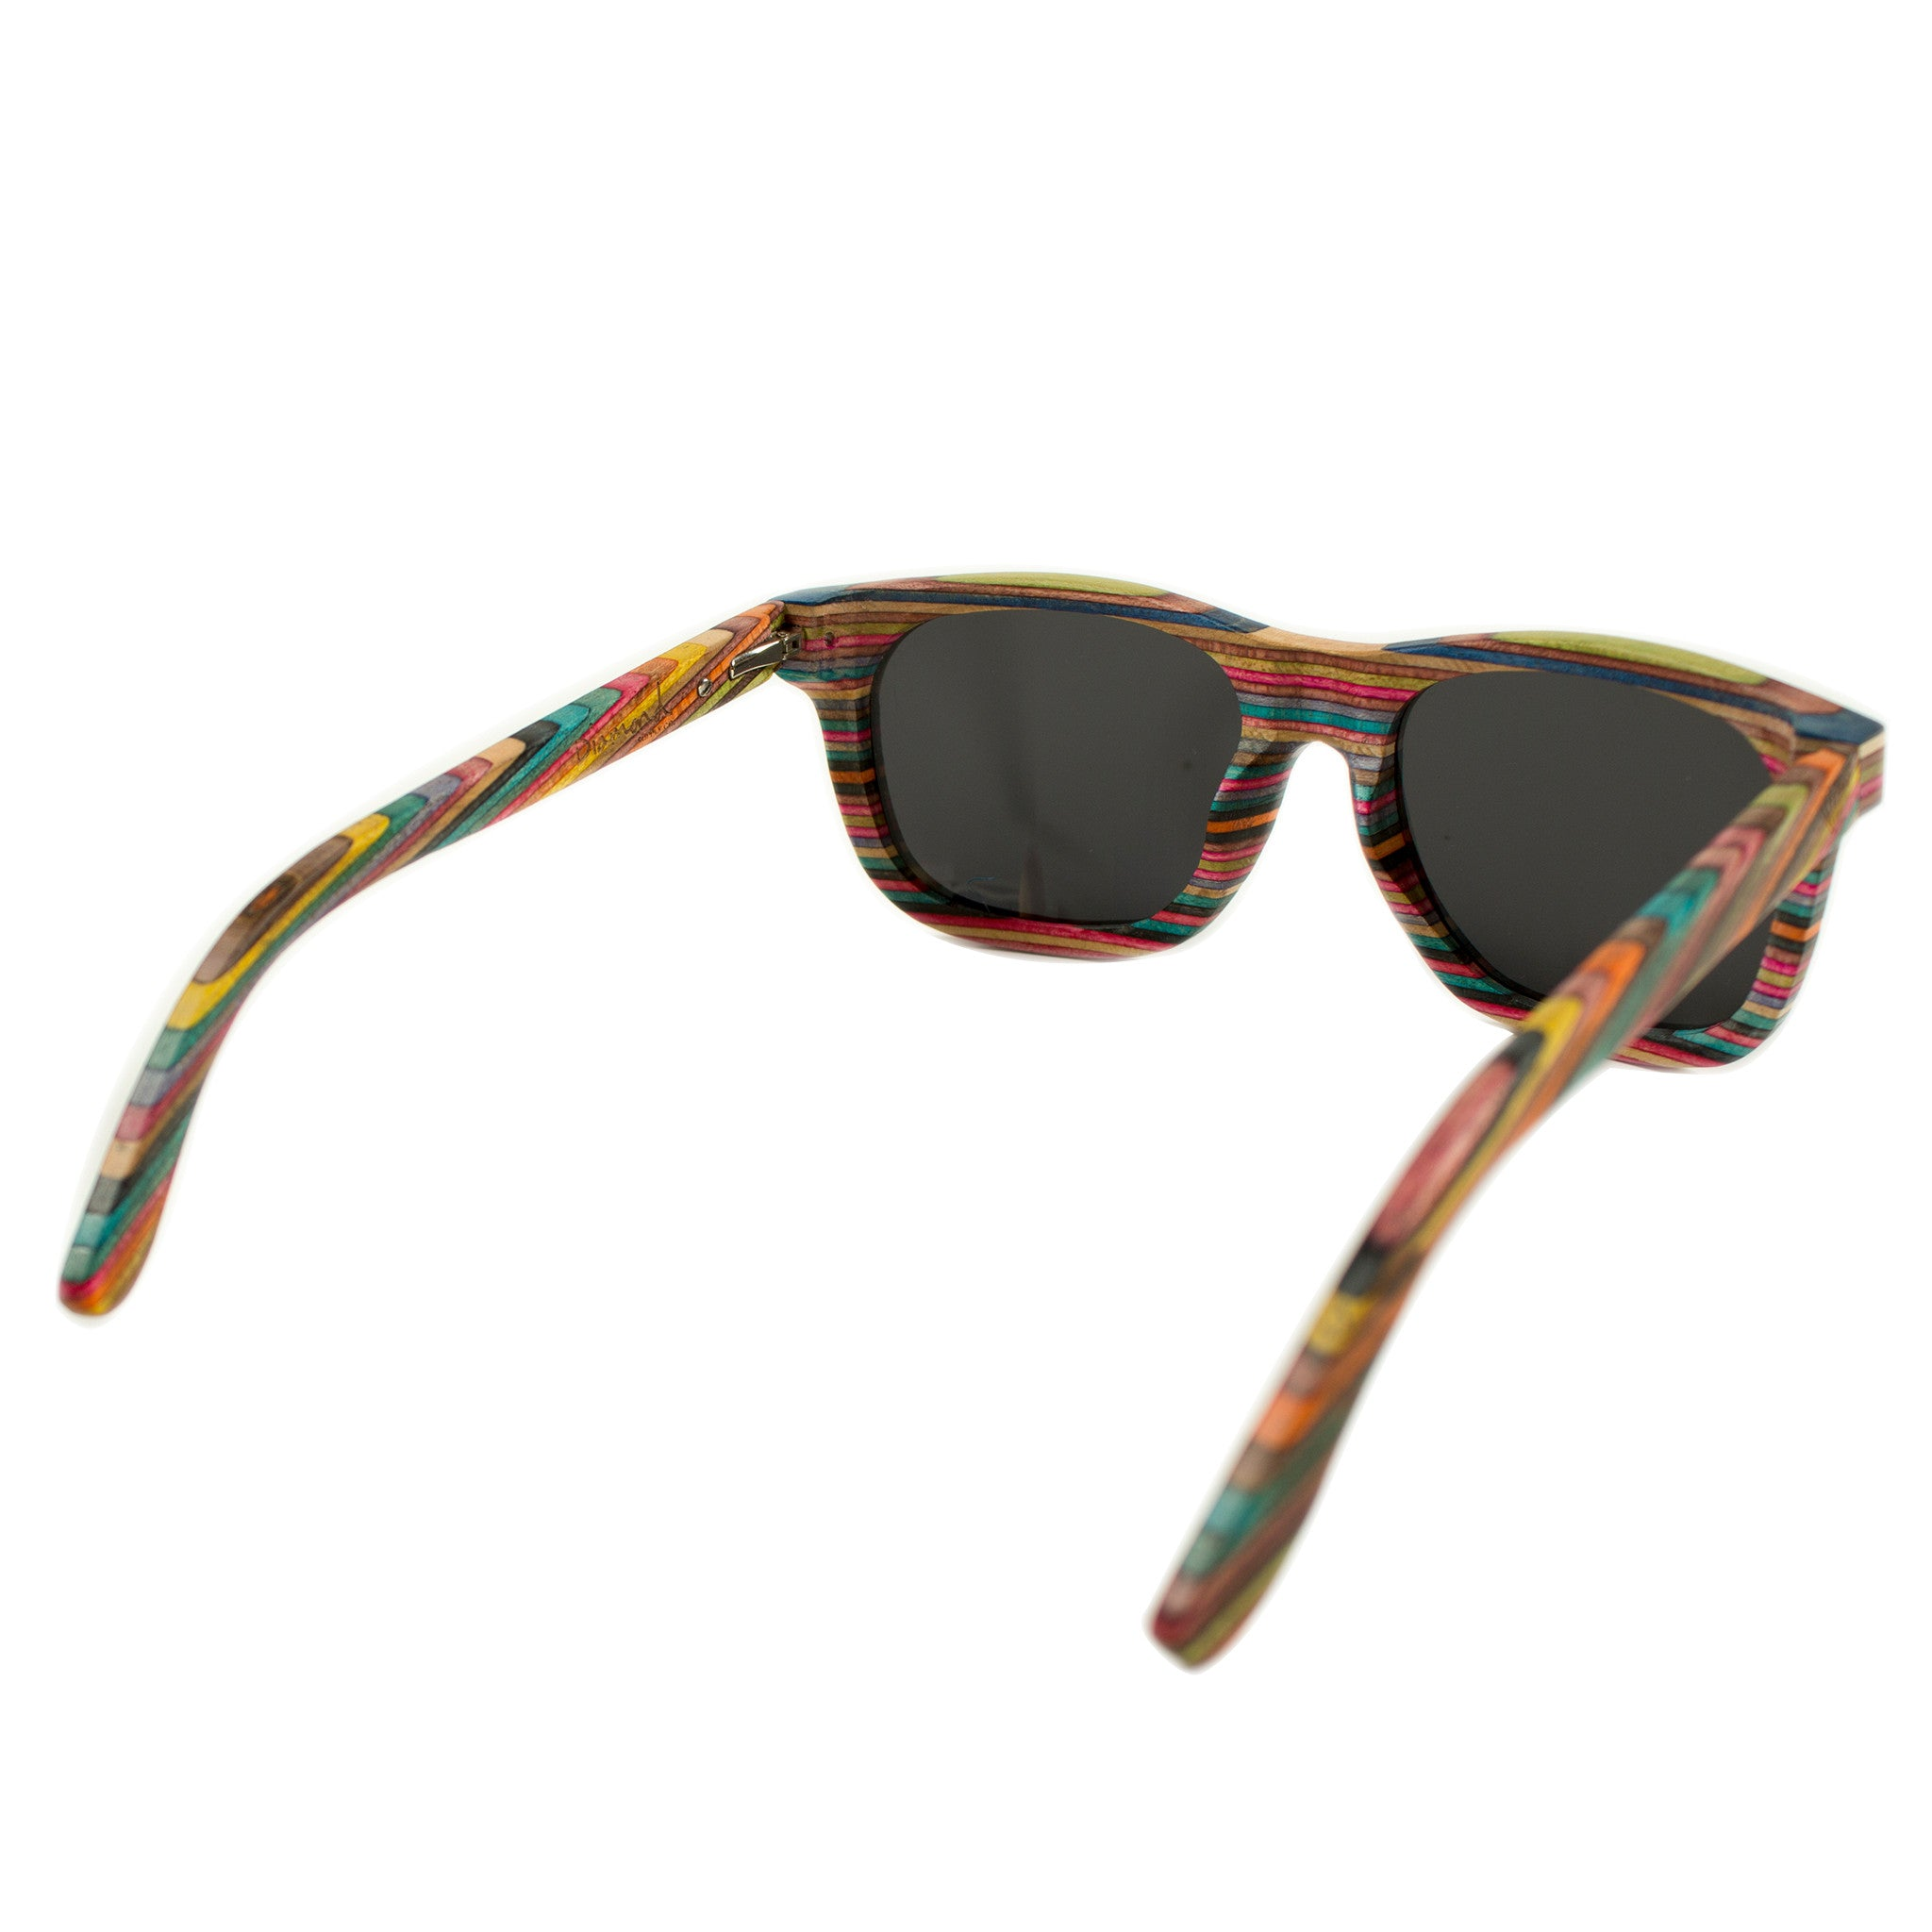 Recycled Skateboard Wood Sunglasses - Stoked Boardshop  - 2